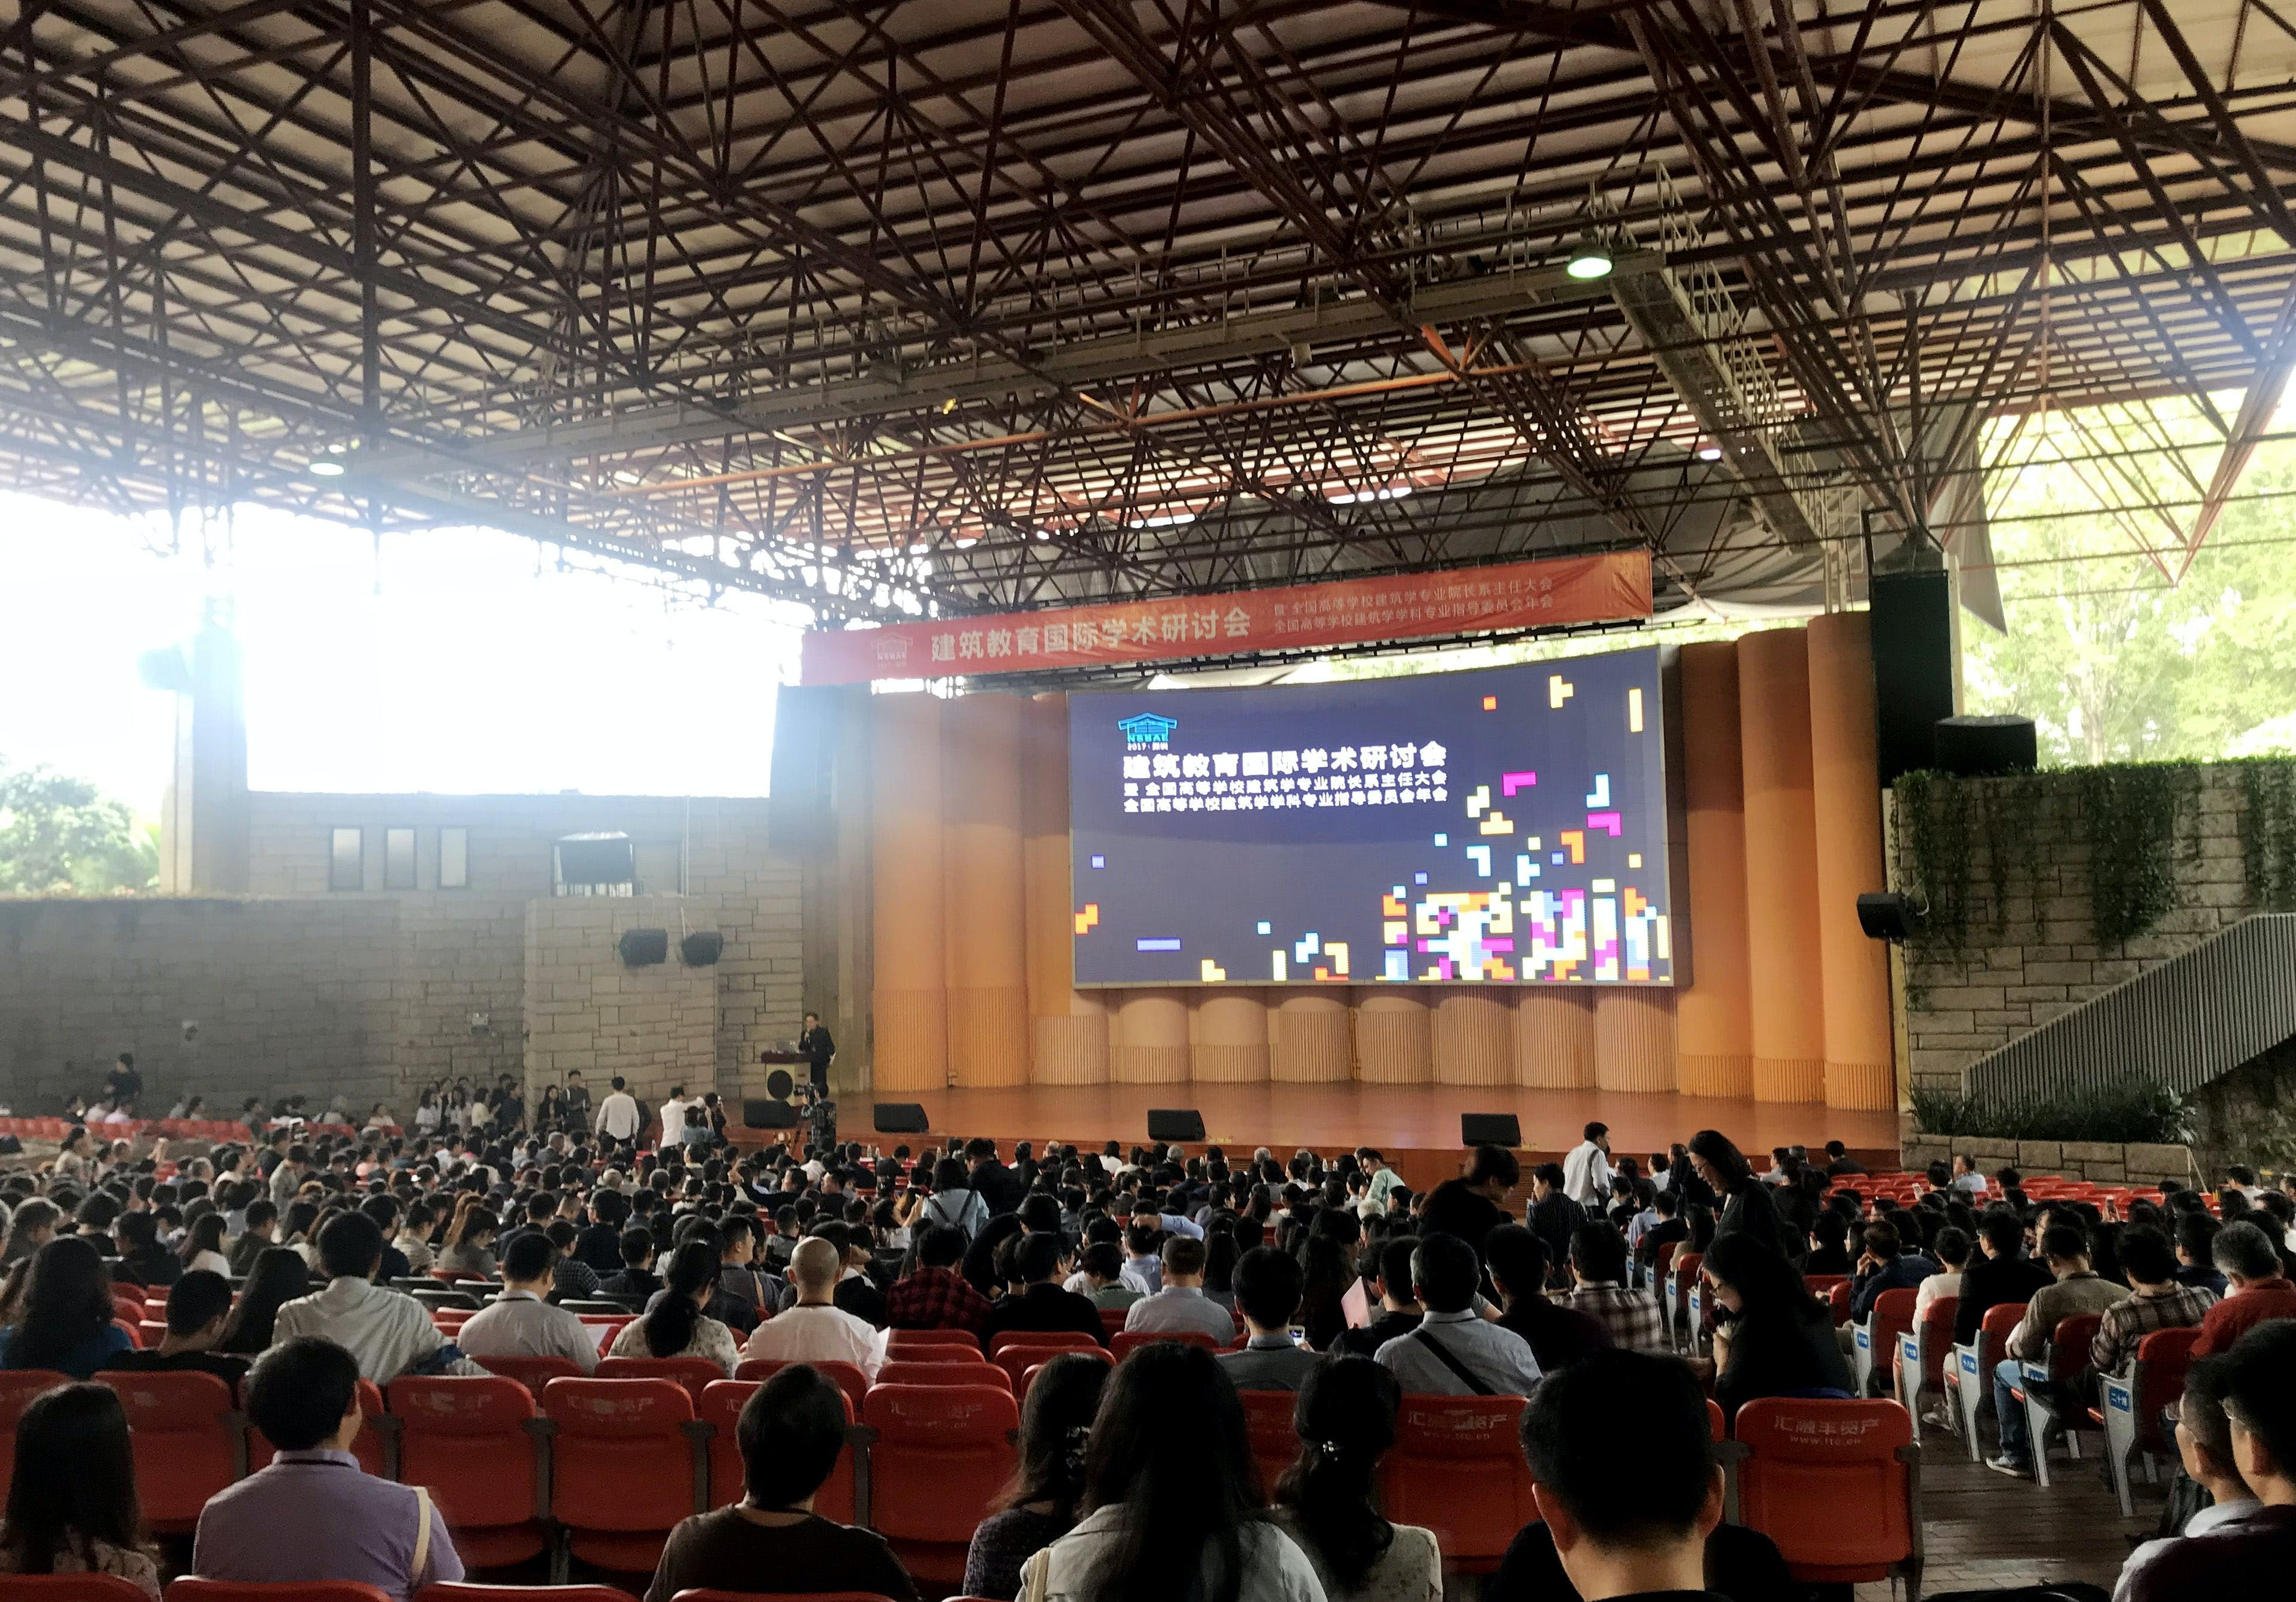 2017 National Architectural Education Annual Symposium in Shenzhen, China.